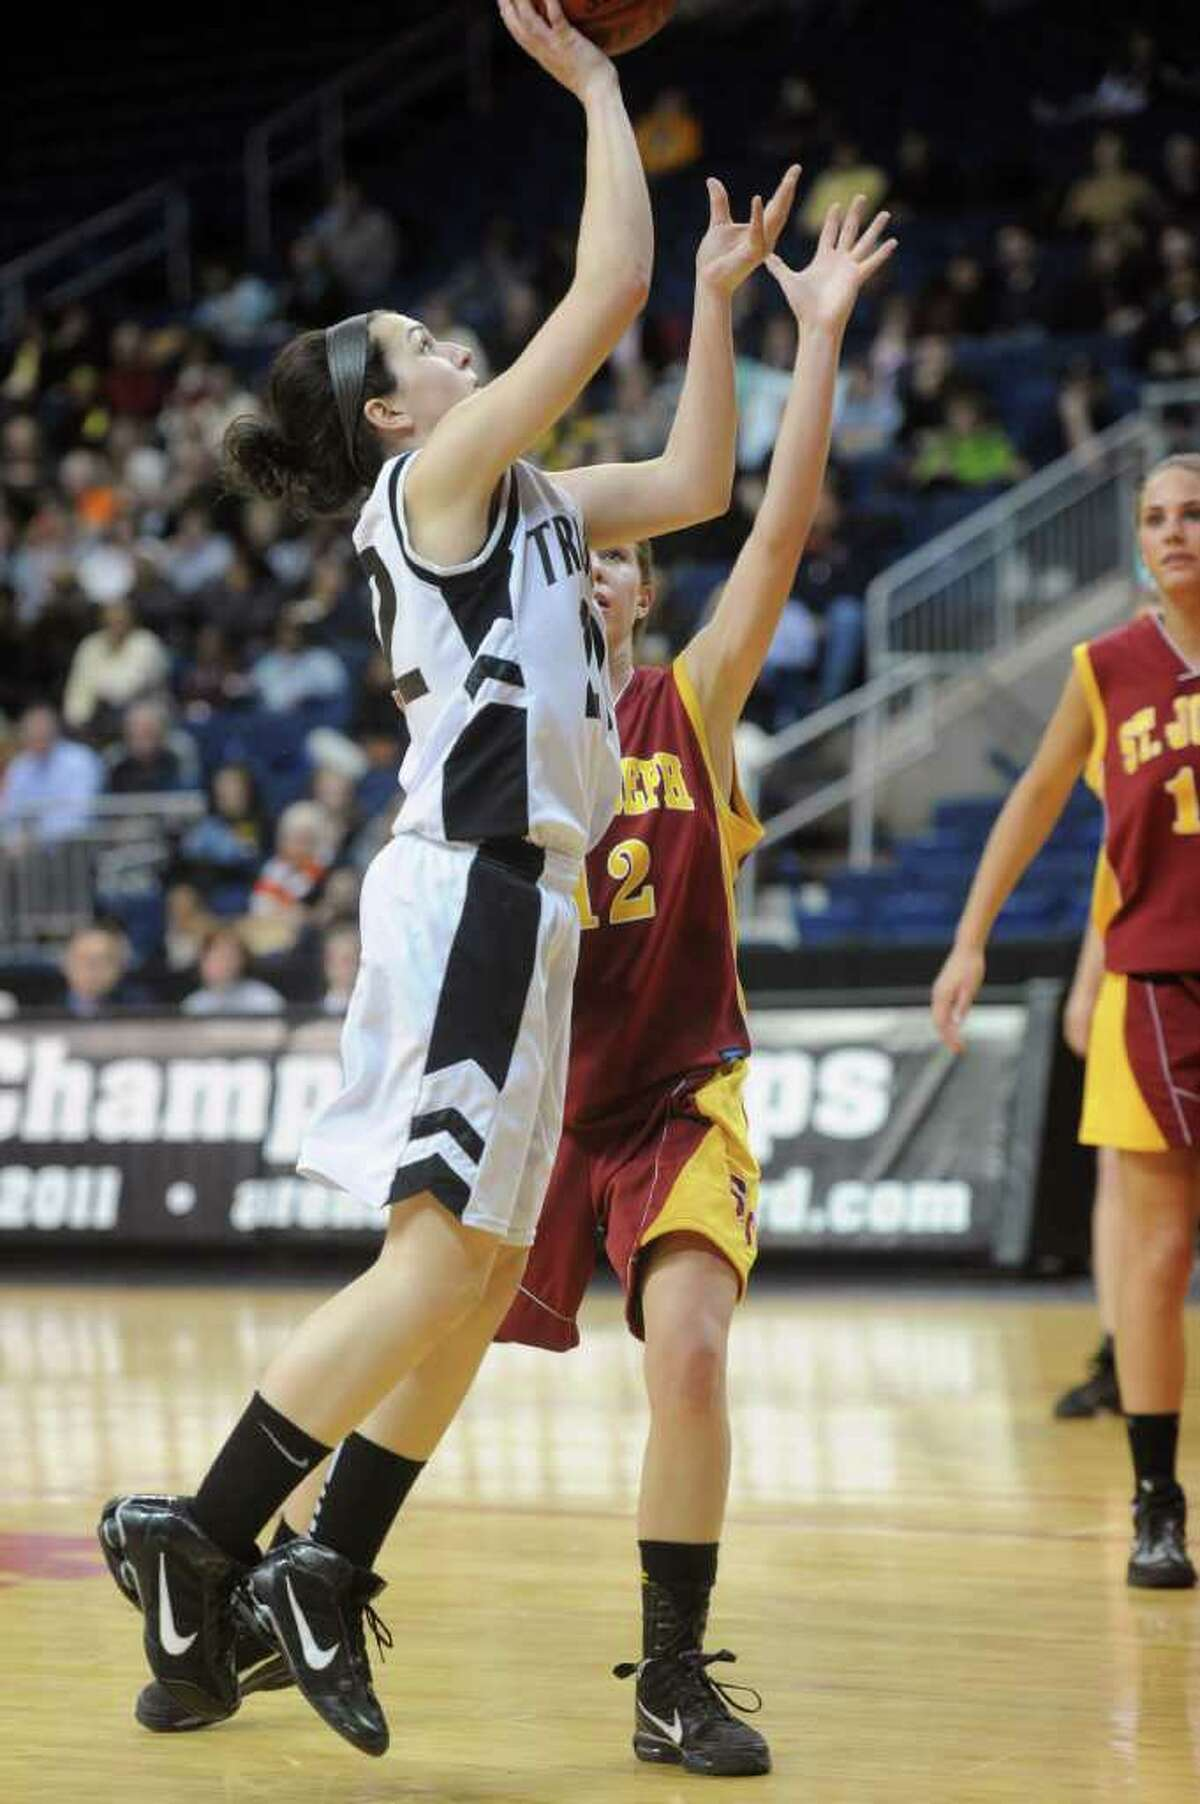 Trumbull's Kelly Coughlin takes a shot during Tuesday's FCIAC girls basketball semifinal game at the Webster Bank Arena at Harbor Yard on Feburary 22, 2011.